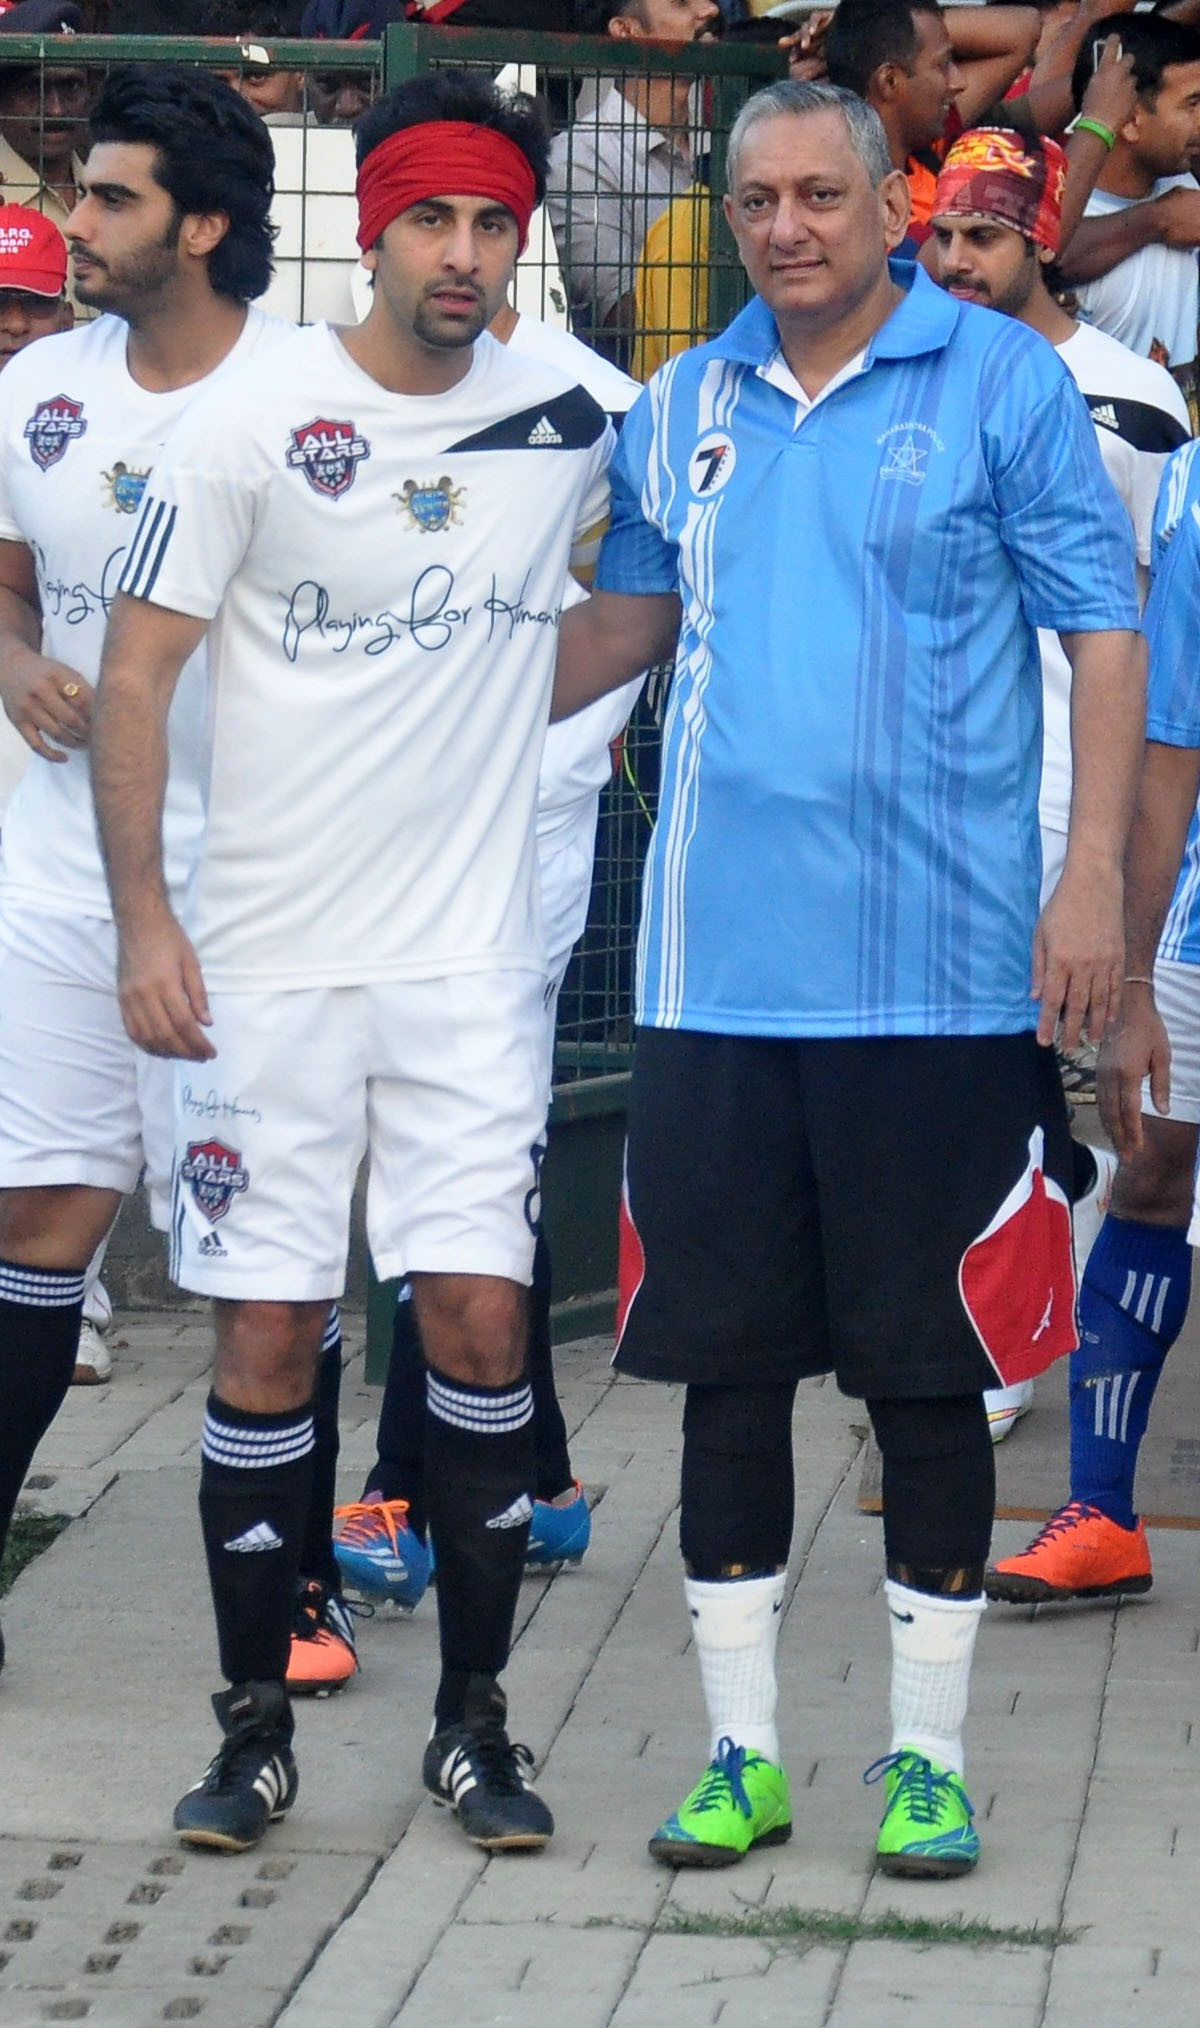 Ranbir Kapoor, Arjun Kapoor and Other Celebs Play Friendly Football Match with Mumbai Police